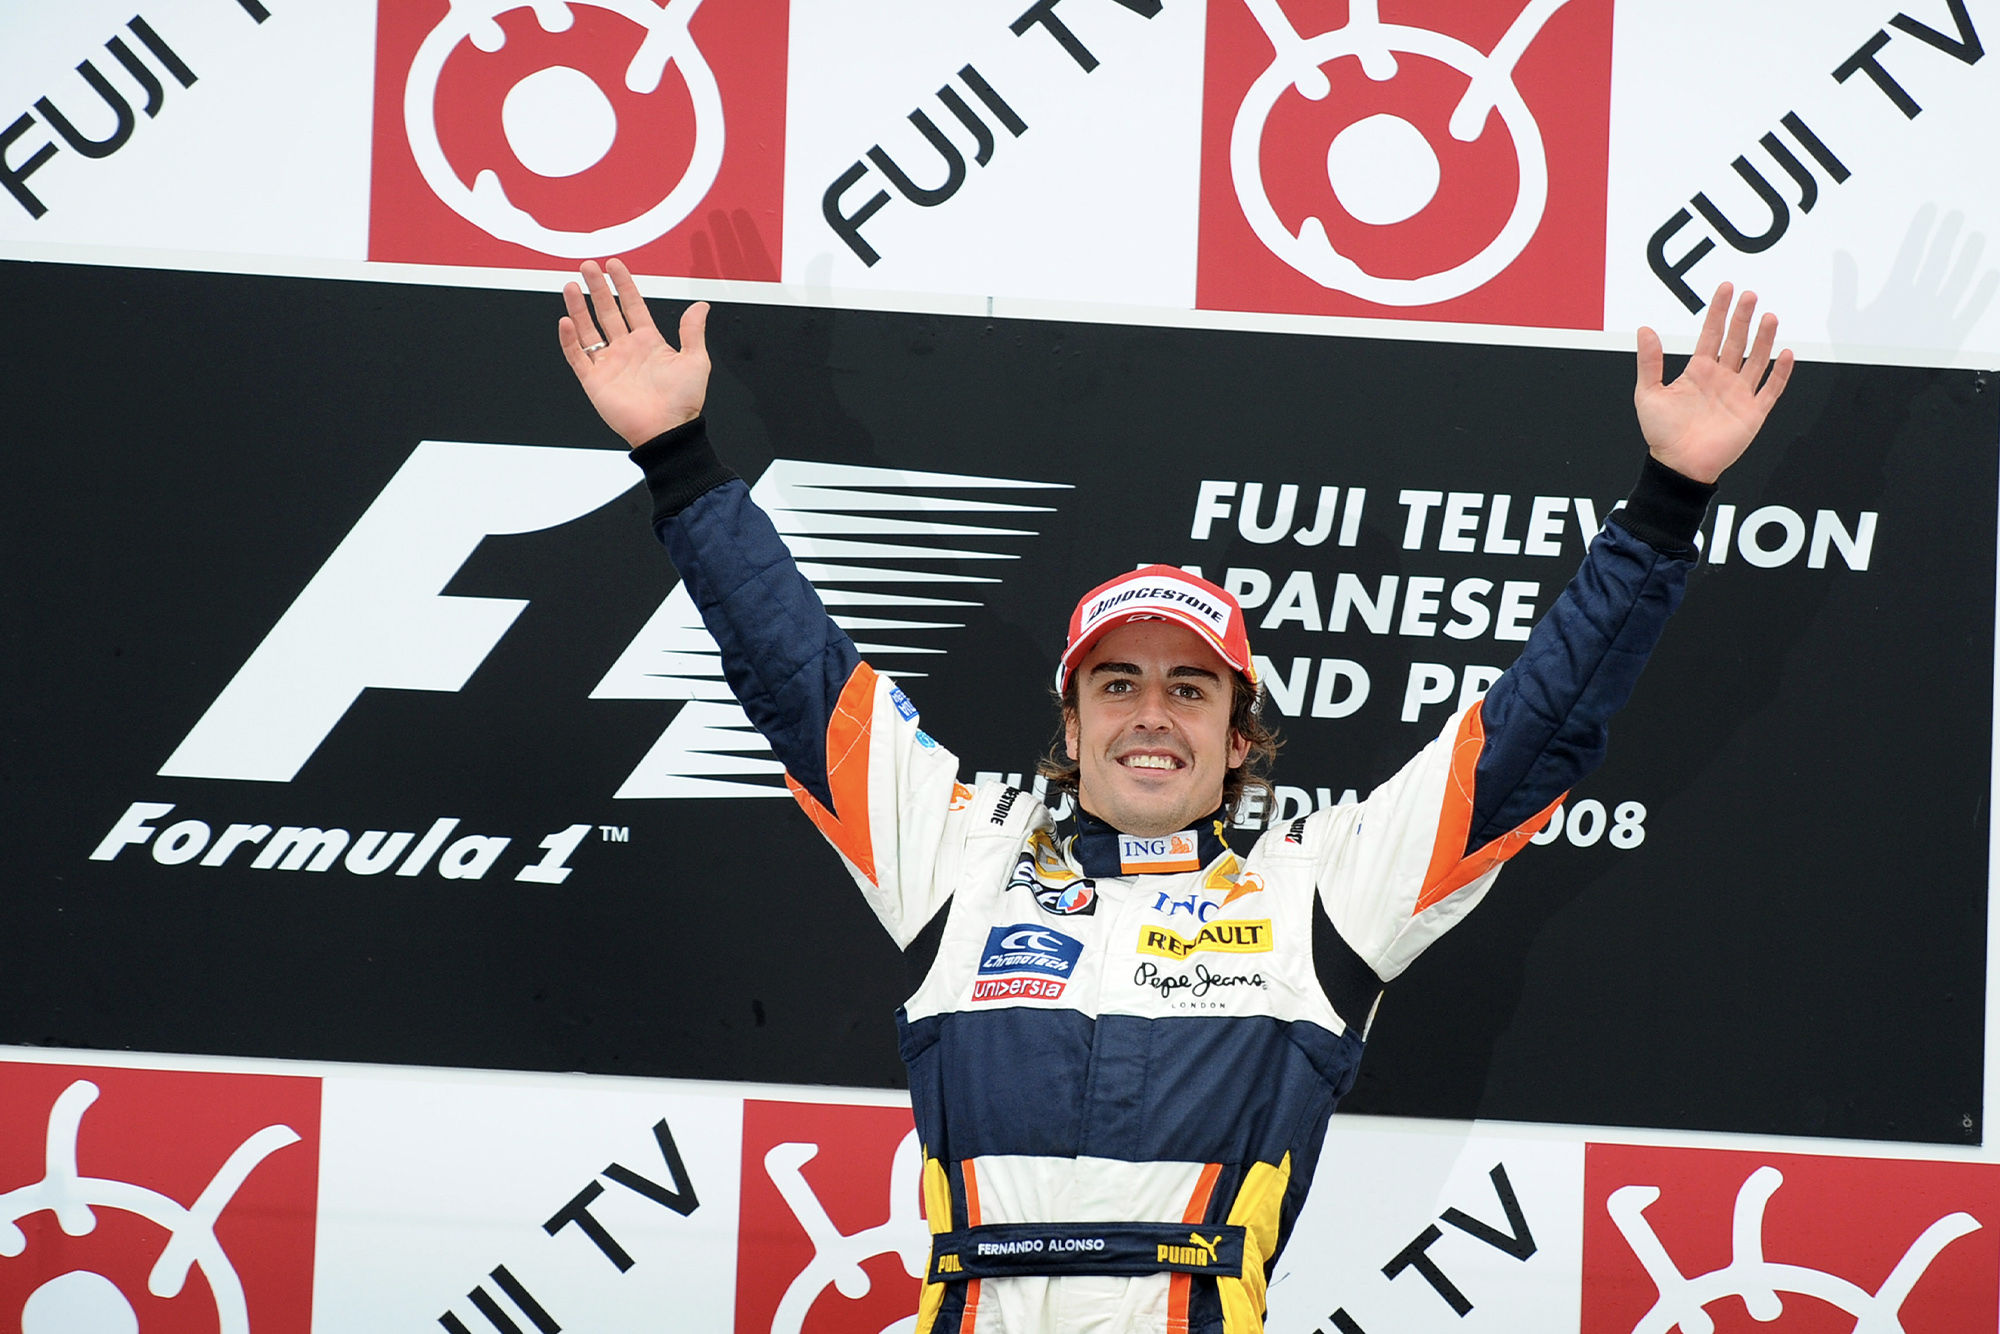 Fernando Alonso celebrates victory on the podium at the 2008 Japanese Grand Prix